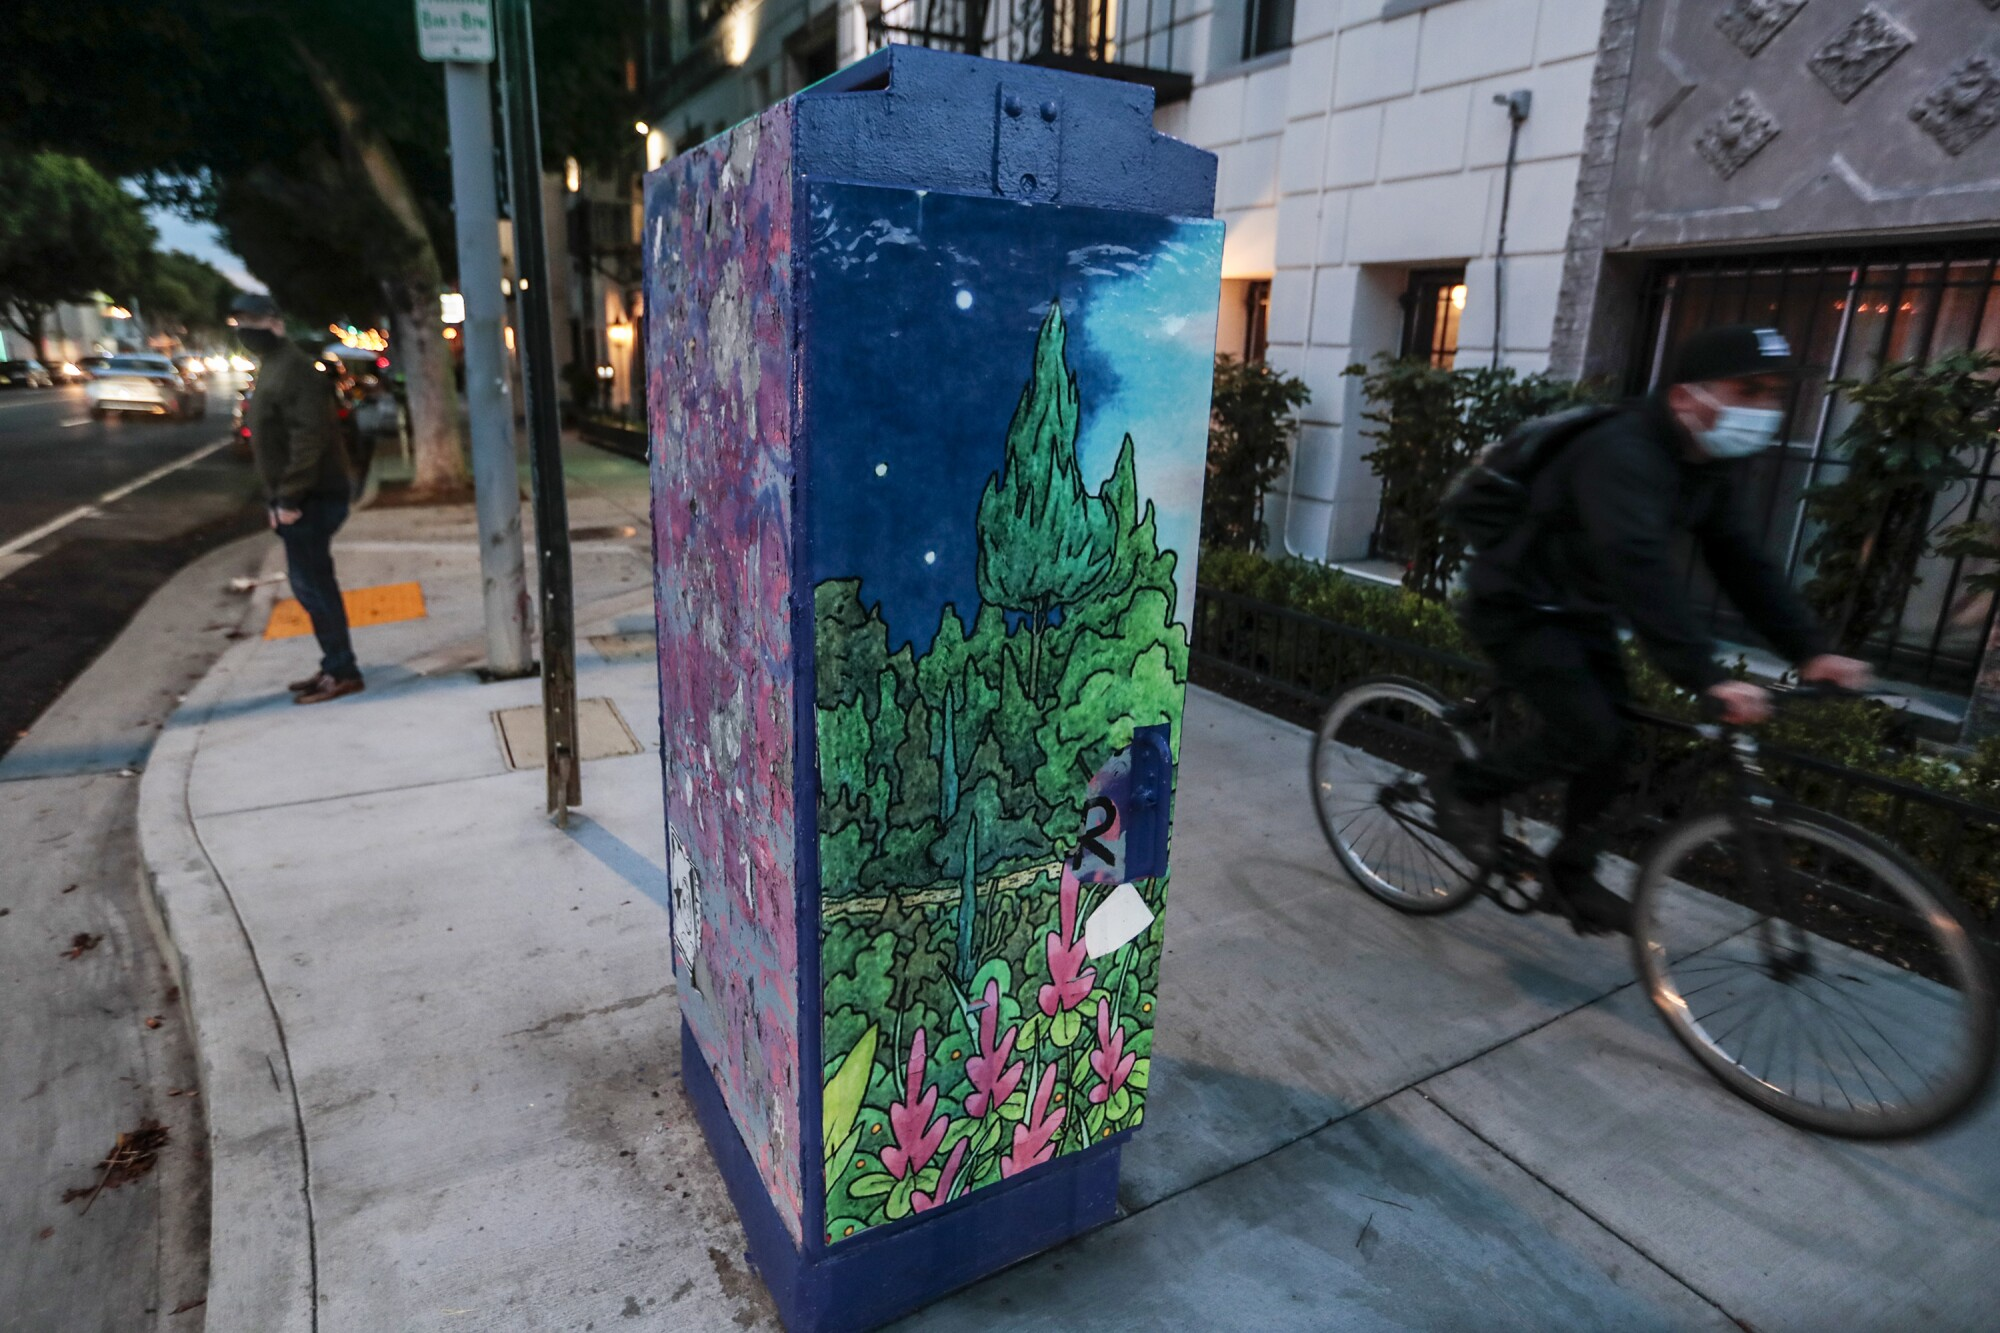 Artist Terrance Whitten's work was commissioned to adorn a Silverlake power box